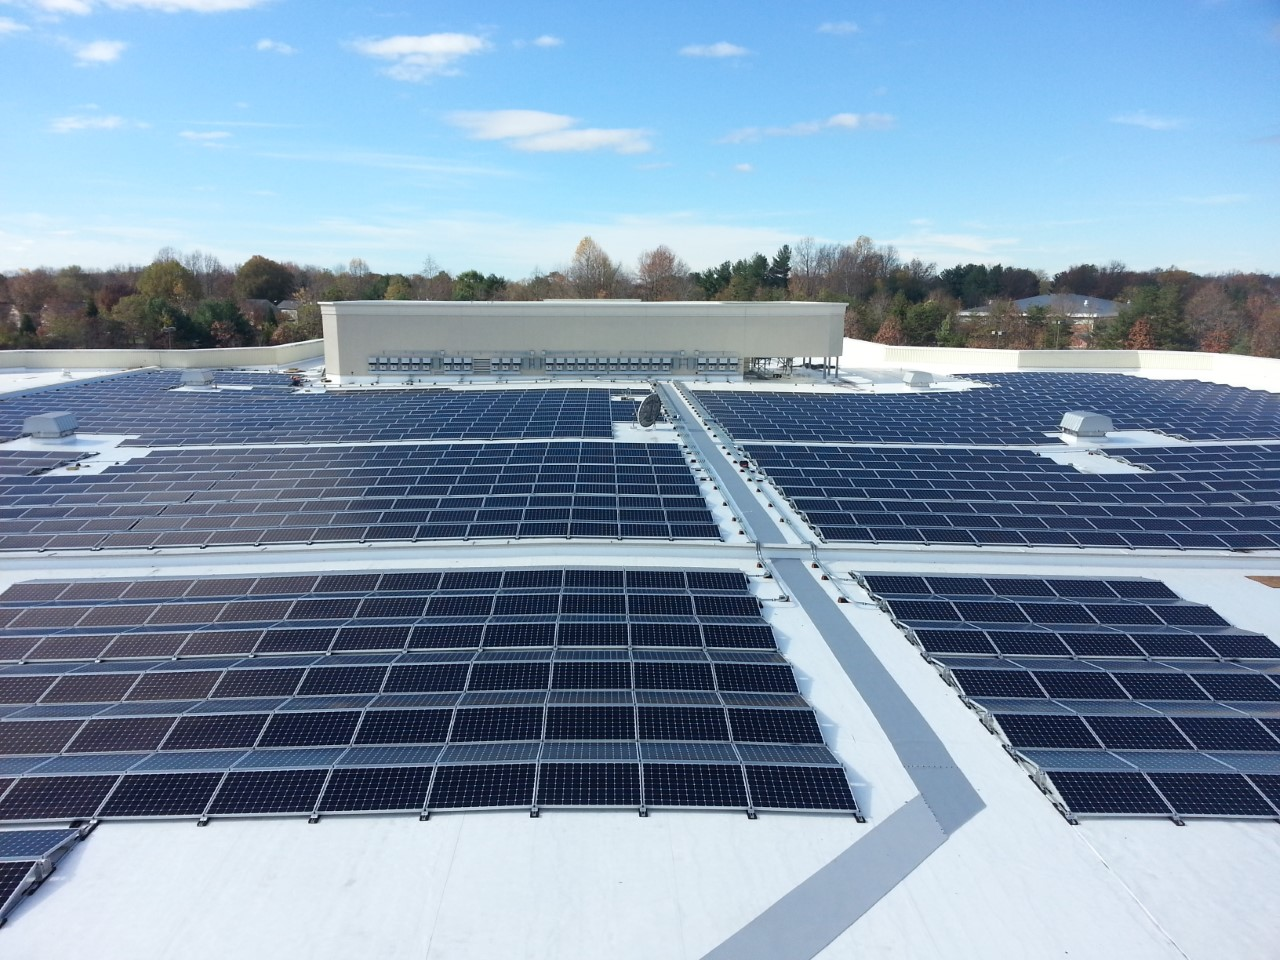 A SunPower rooftop solar system at the Macy's, Inc. store in Bowie, M.D.